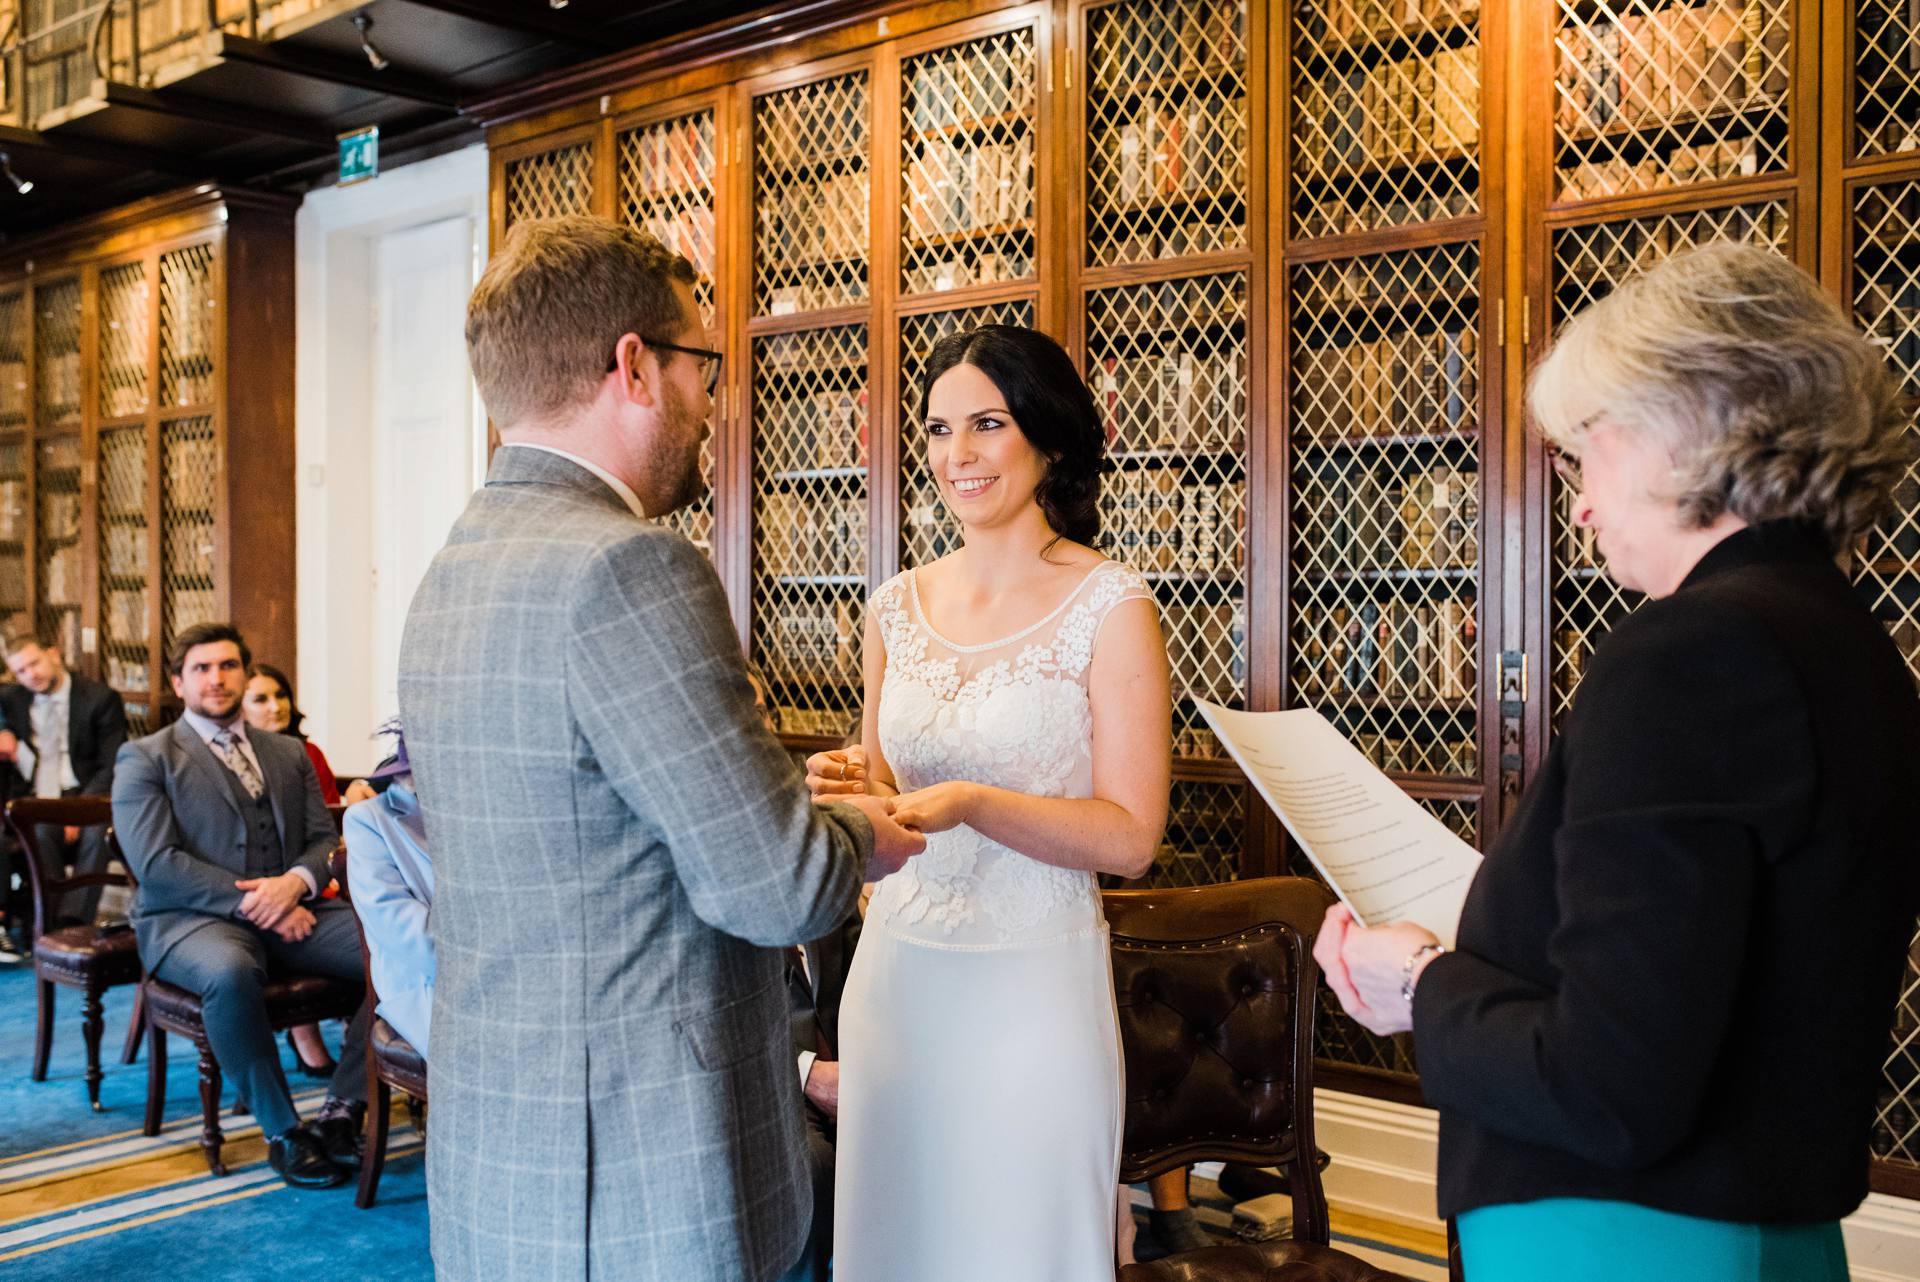 Bride and groom exchanging vows in library